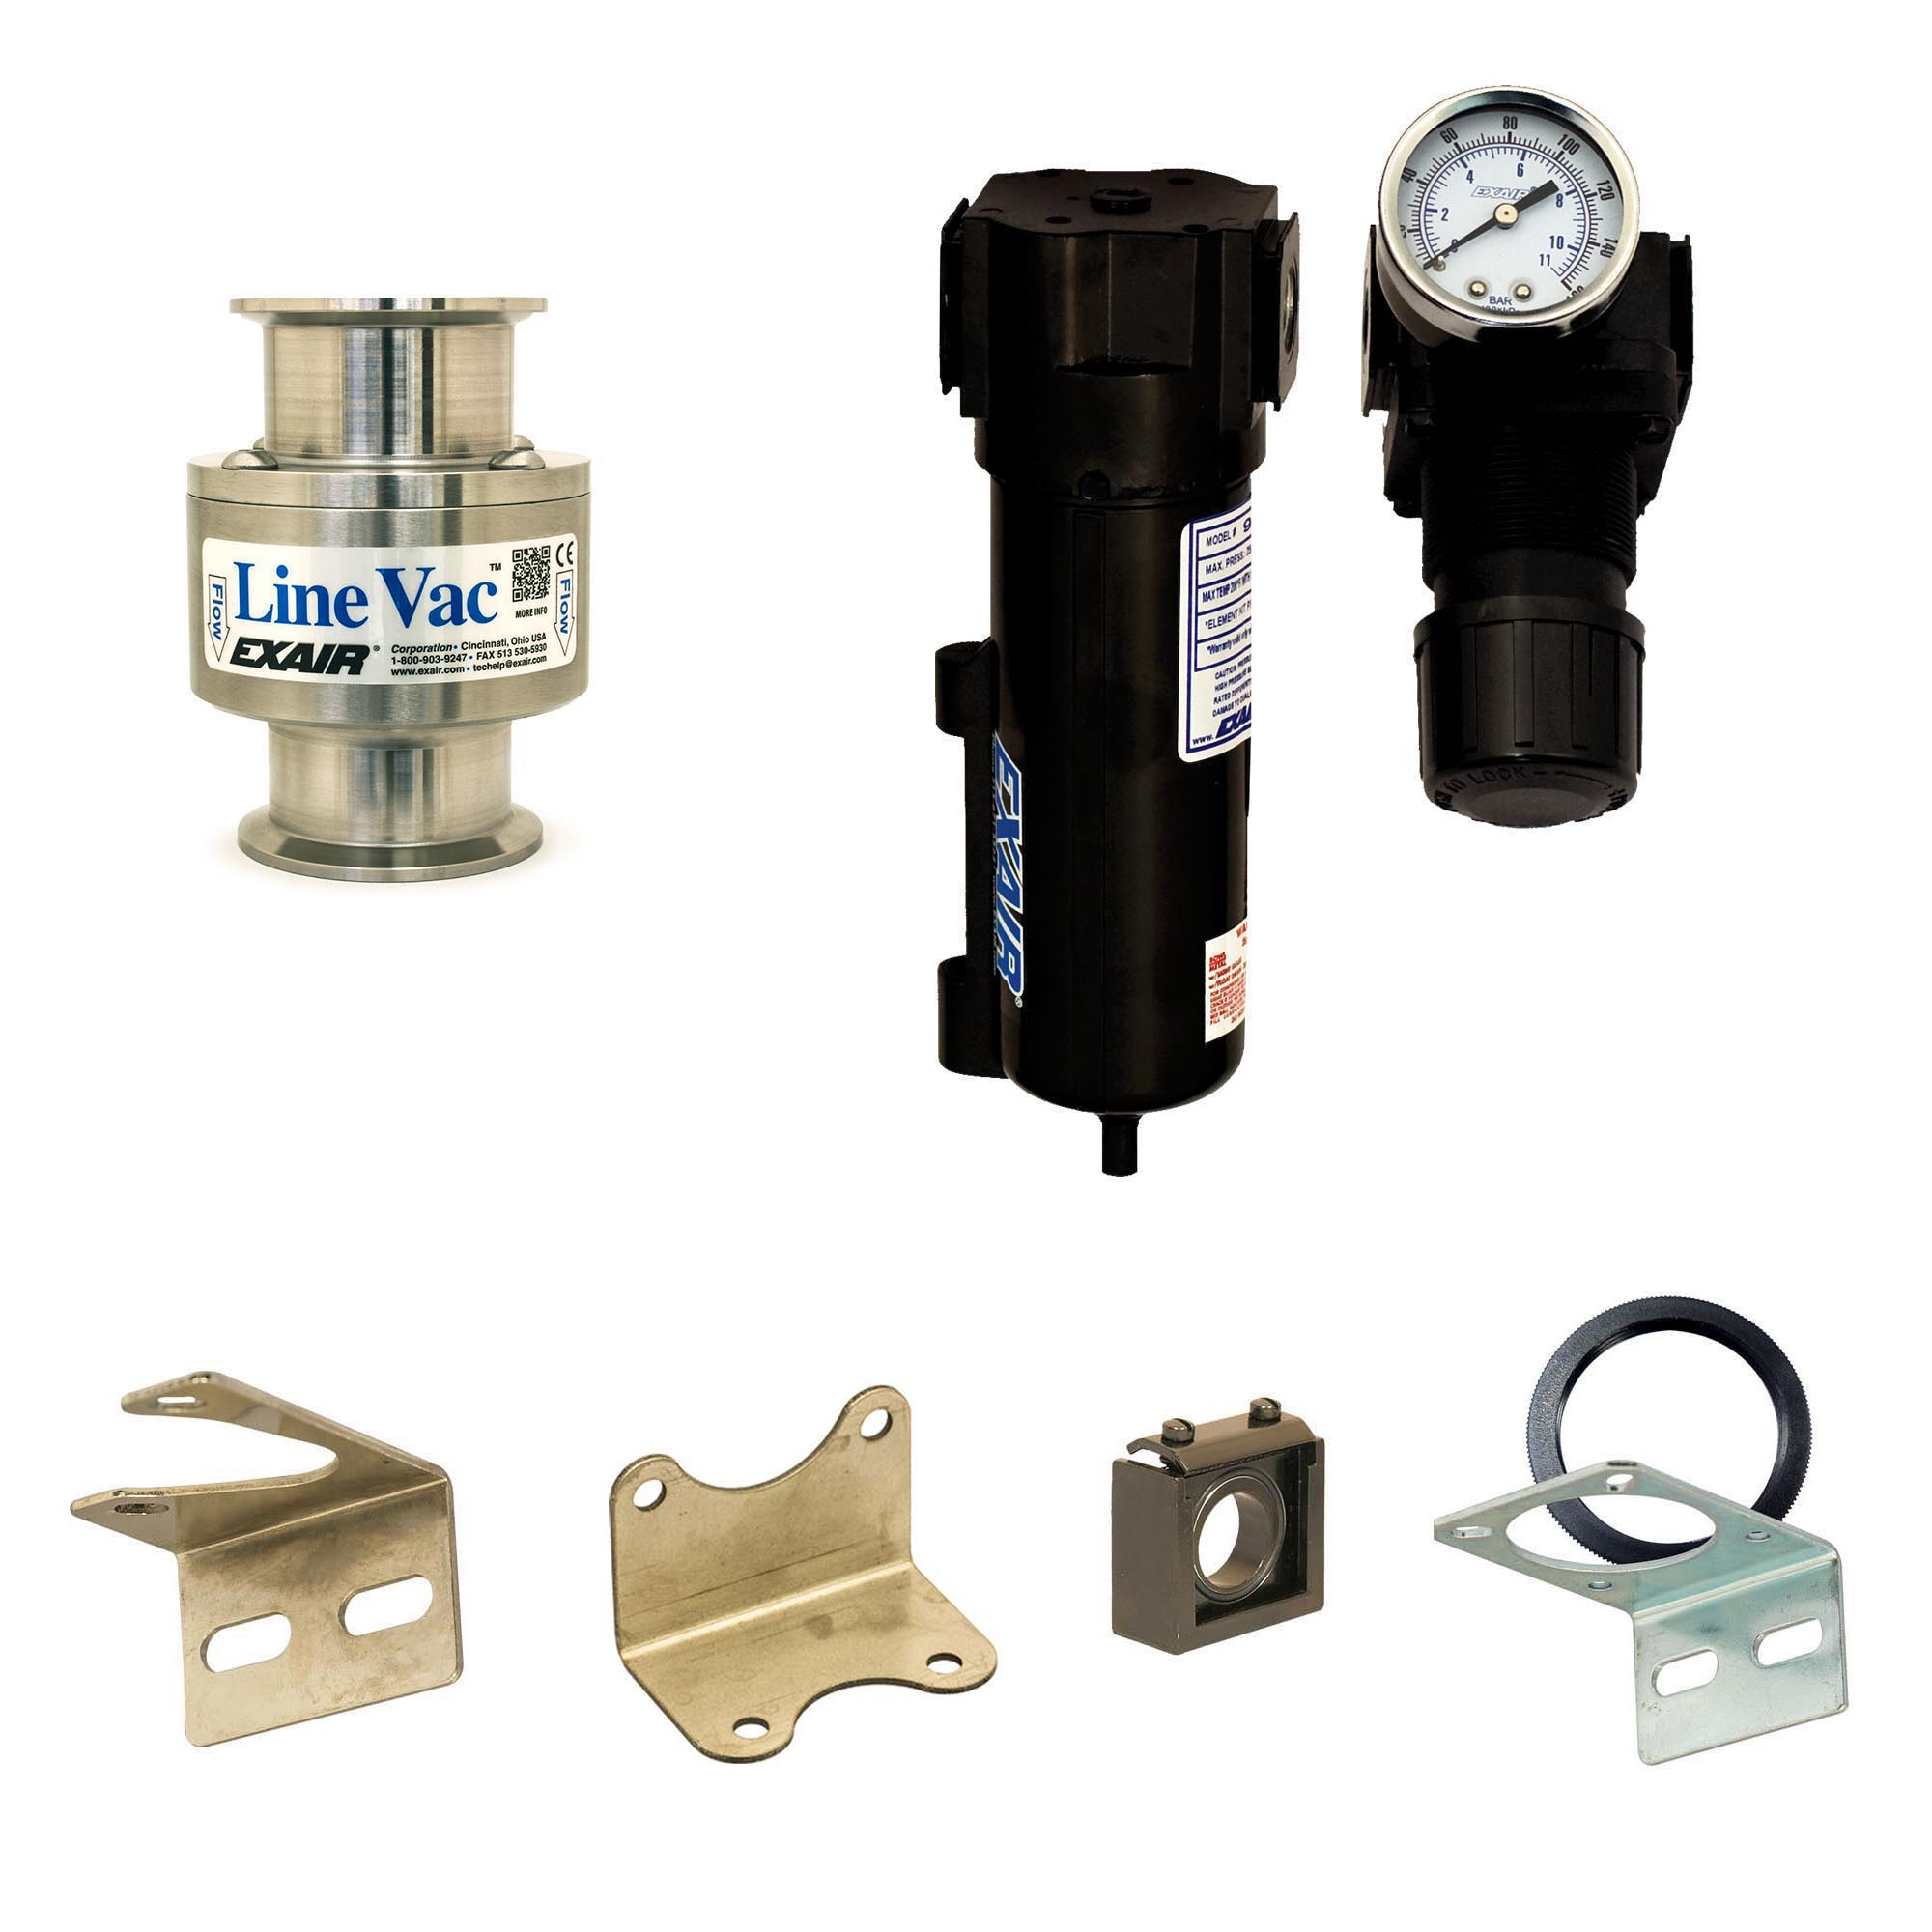 """Sanitary Flange Line Vac Kits are available in 4 sizes from 1-1/2"""" to 3"""". They include the Line Vac, mounting bracket, filter separator and pressure regulator (with coupler)."""